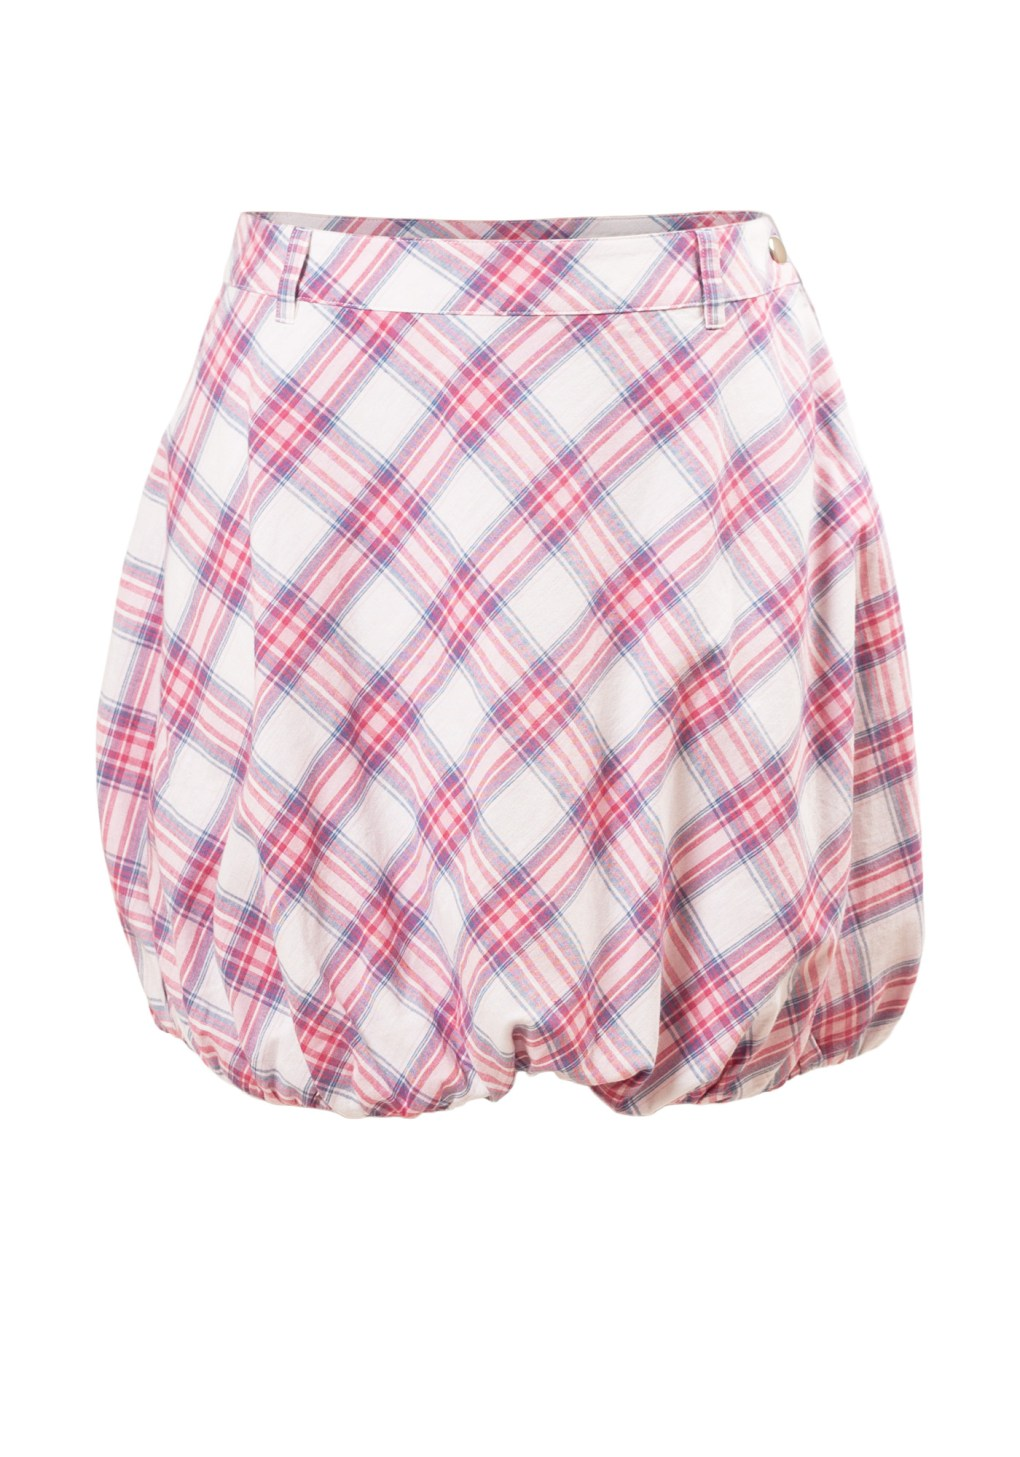 MINC Petite Girls Bubble Skirt in White, Pink and Blue Checks Cotton